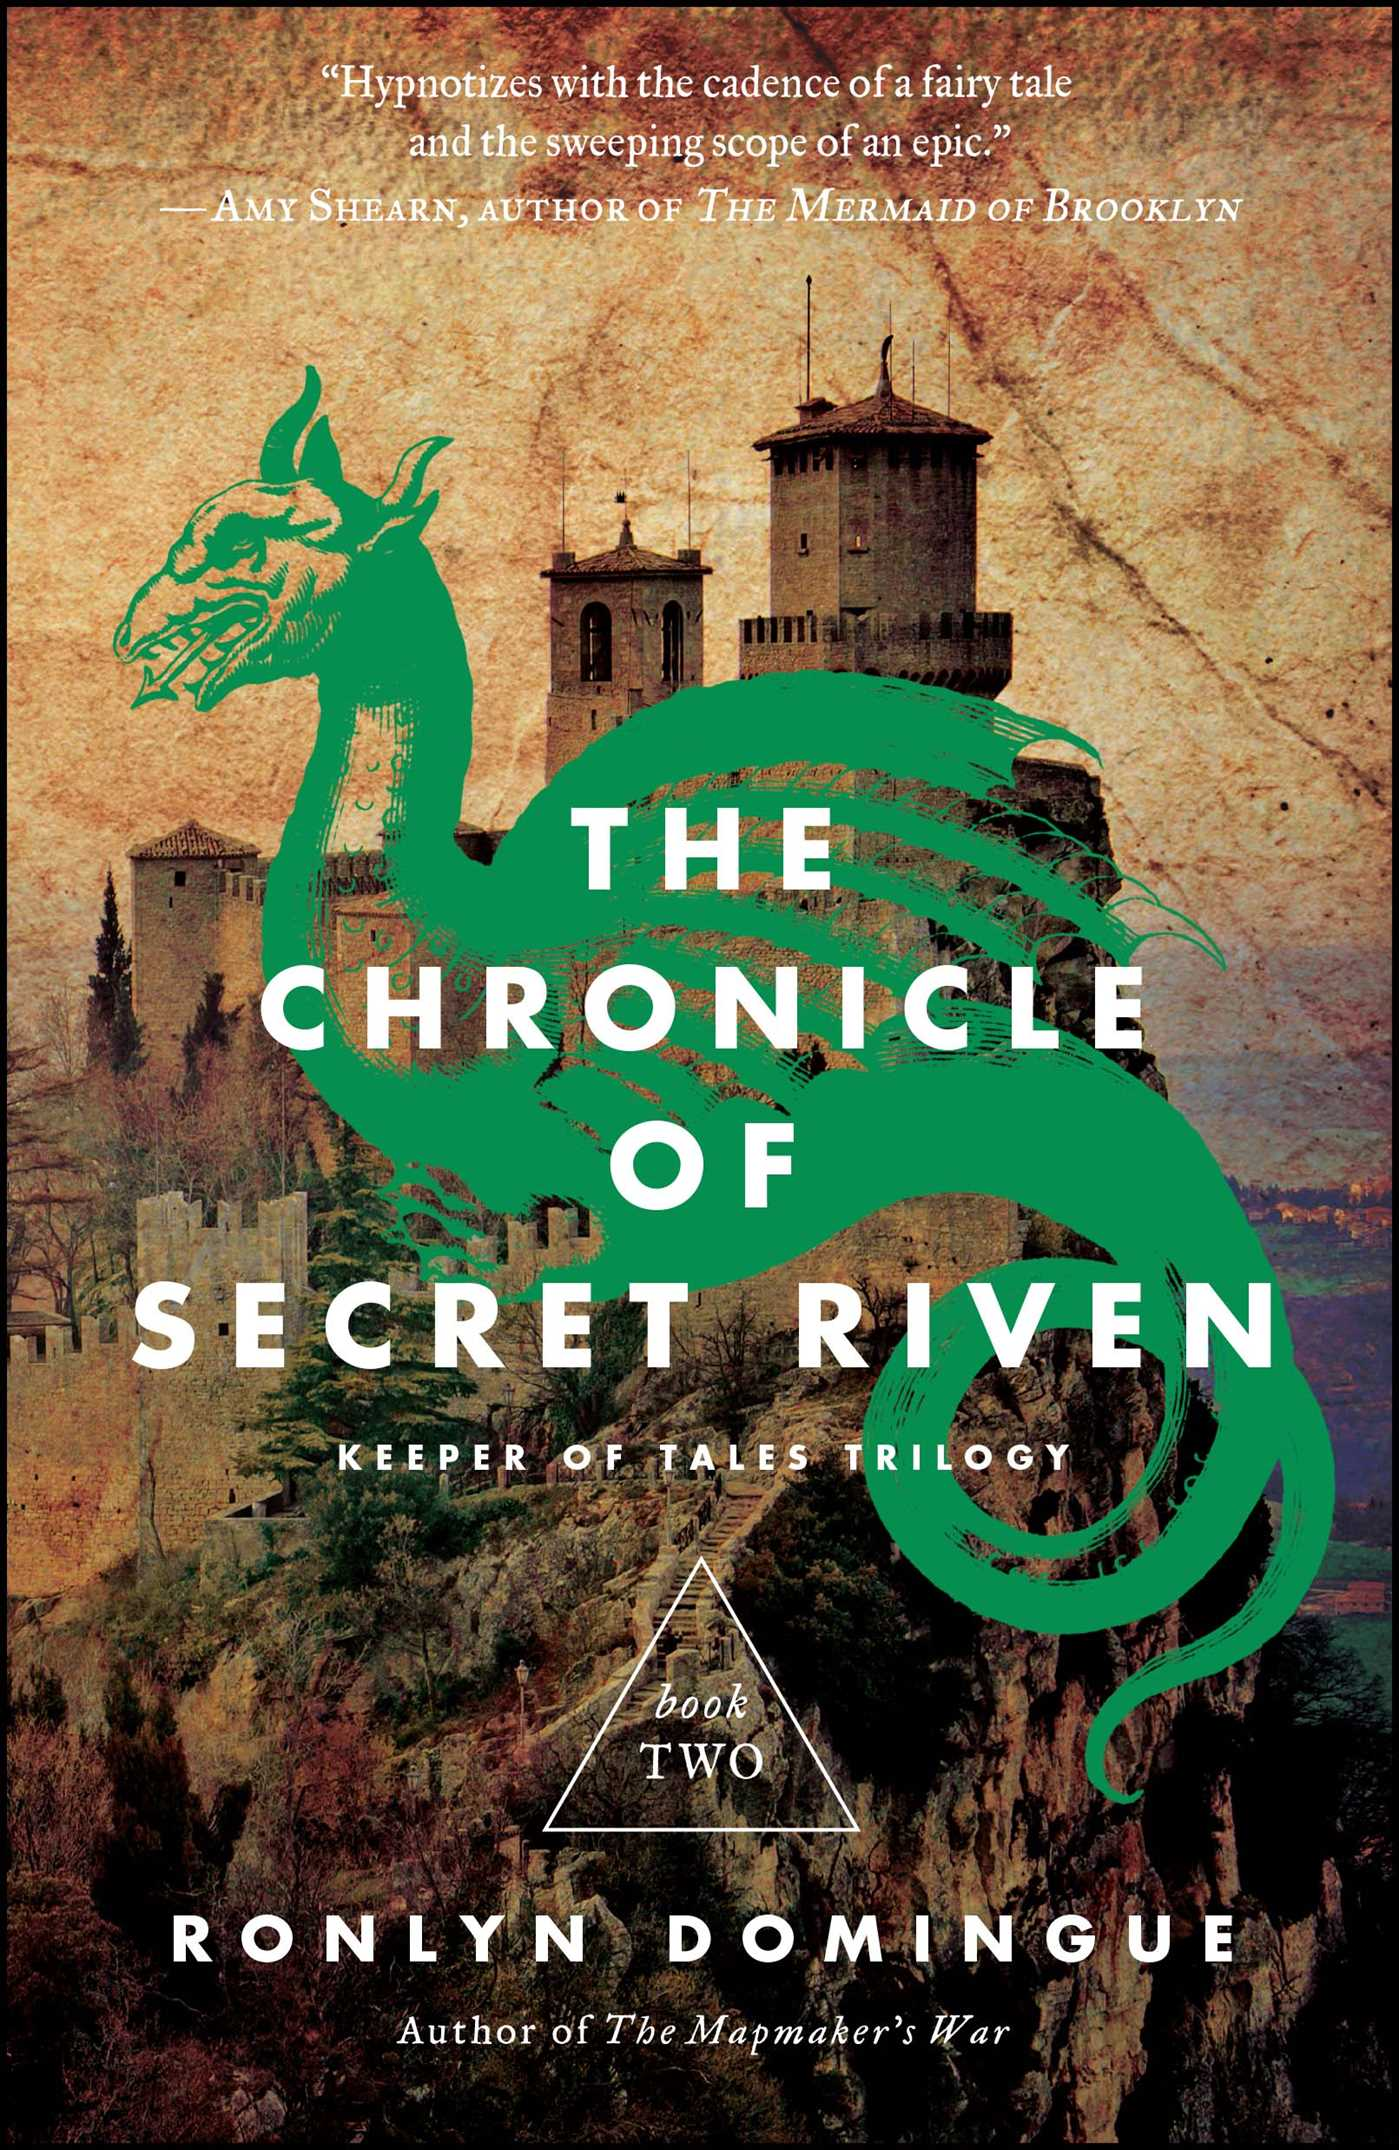 The-chronicle-of-secret-riven-9781451688924_hr